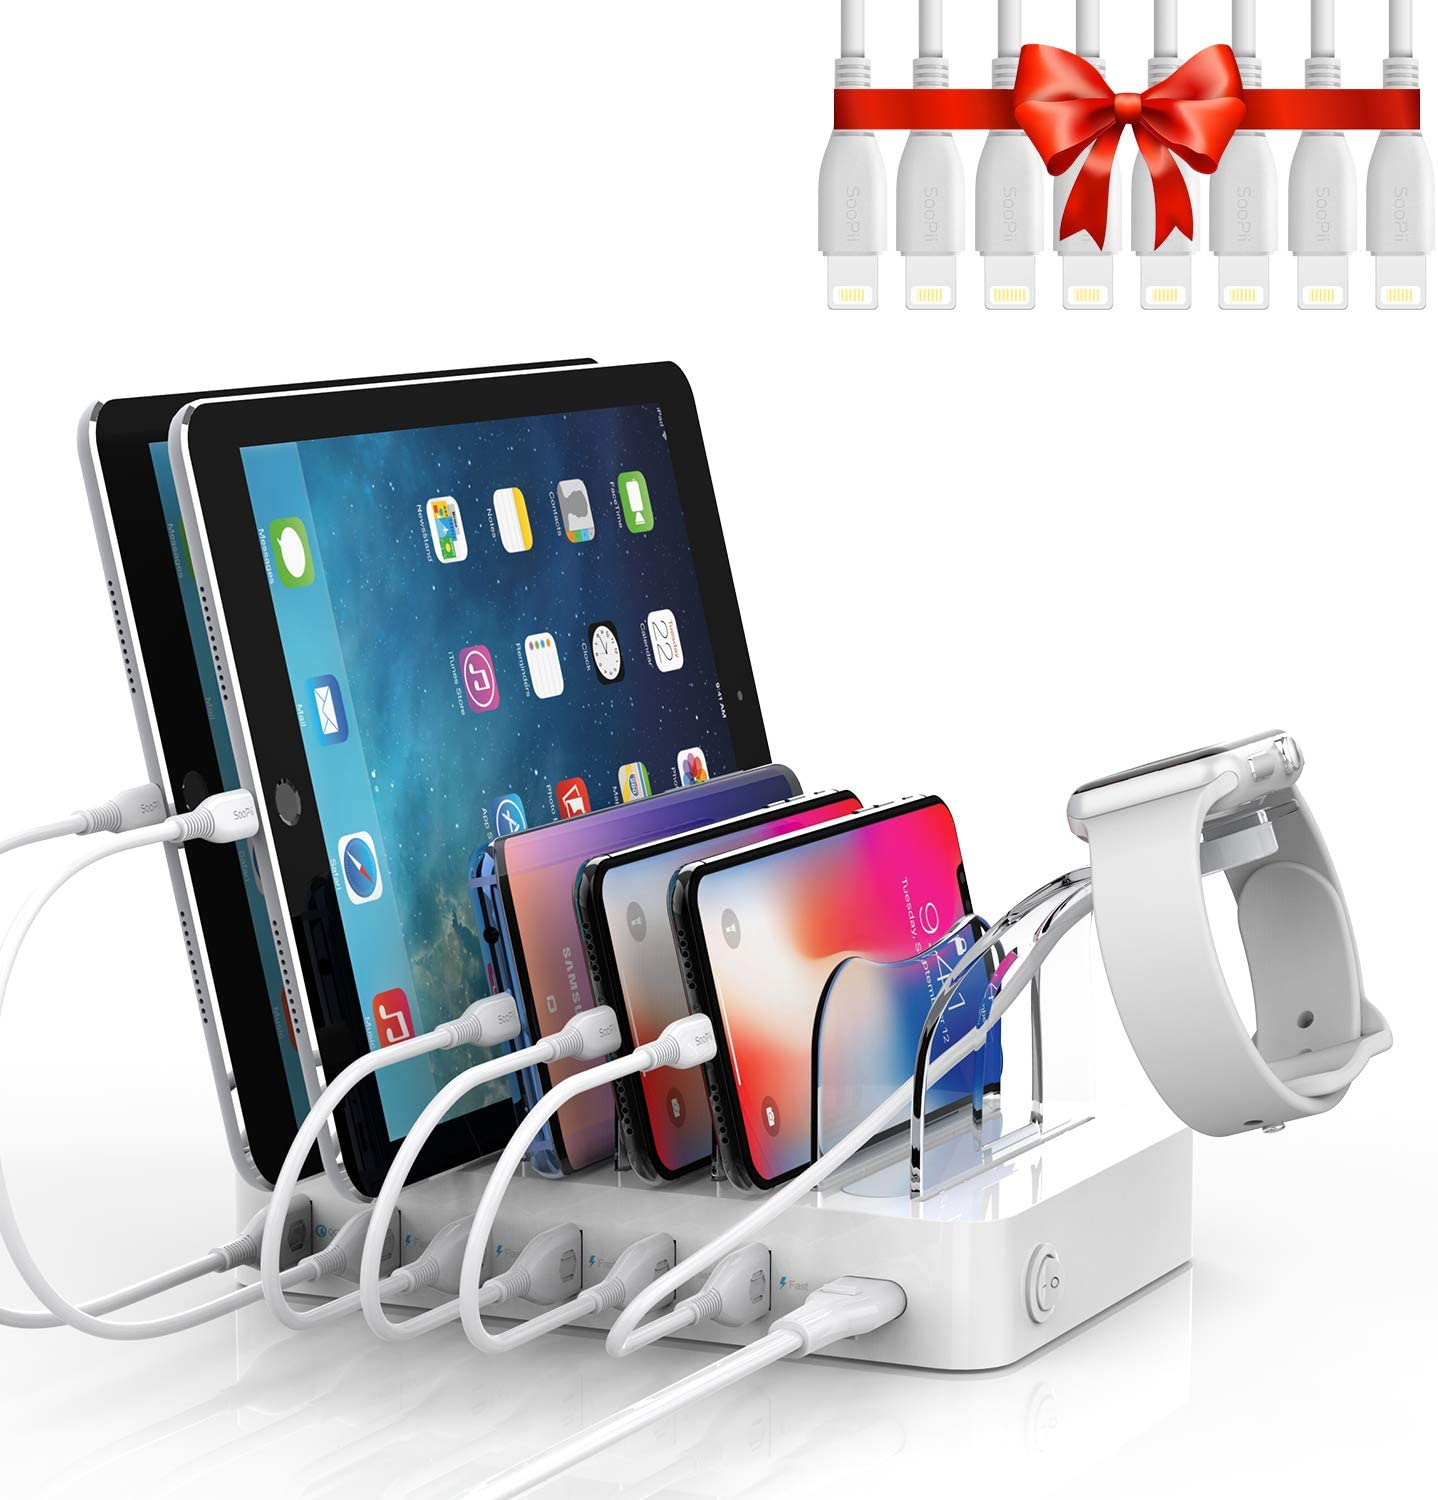 Amazon.com: Soopii Quick Charge 3.0 60W/12A 6-Port Charging Station for  Multiple Devices, 8pcs USB Charging Cables and 1pc Plastic Holder for i  Watch Charger Included,for Phones, Tablets,and Other Electronics: Home  Audio &